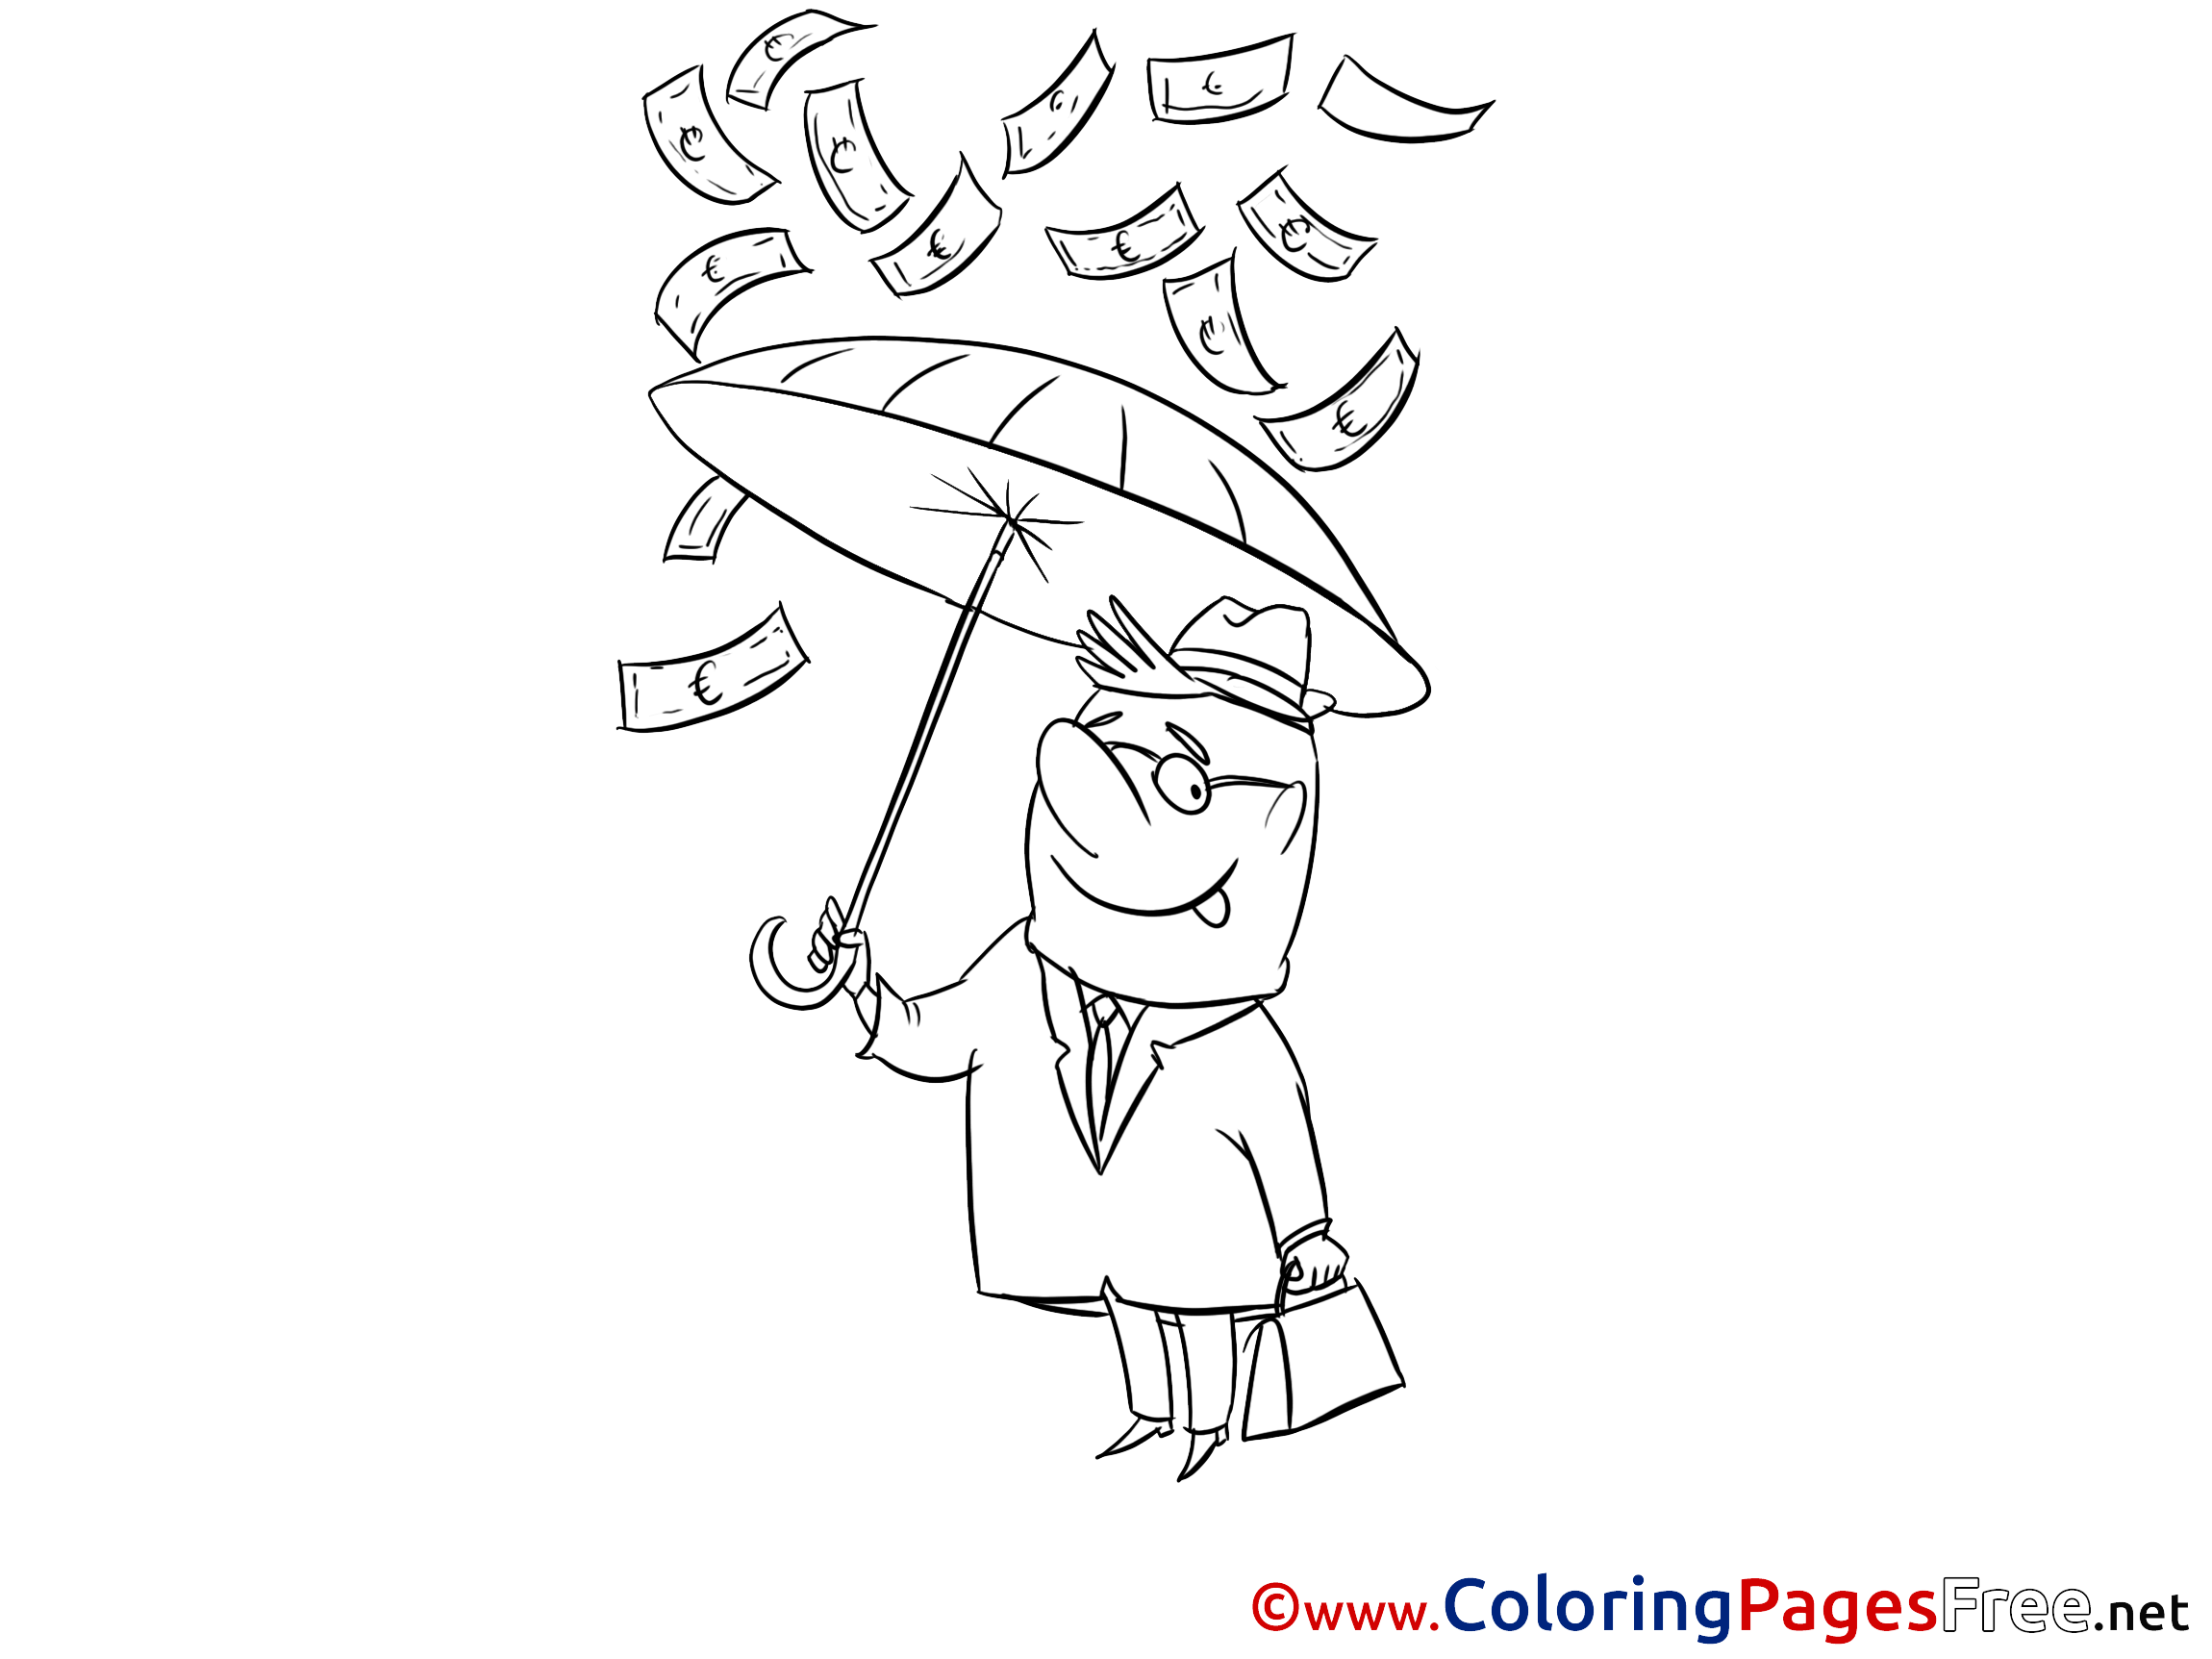 Umbrella Money Man download printable Coloring Pages